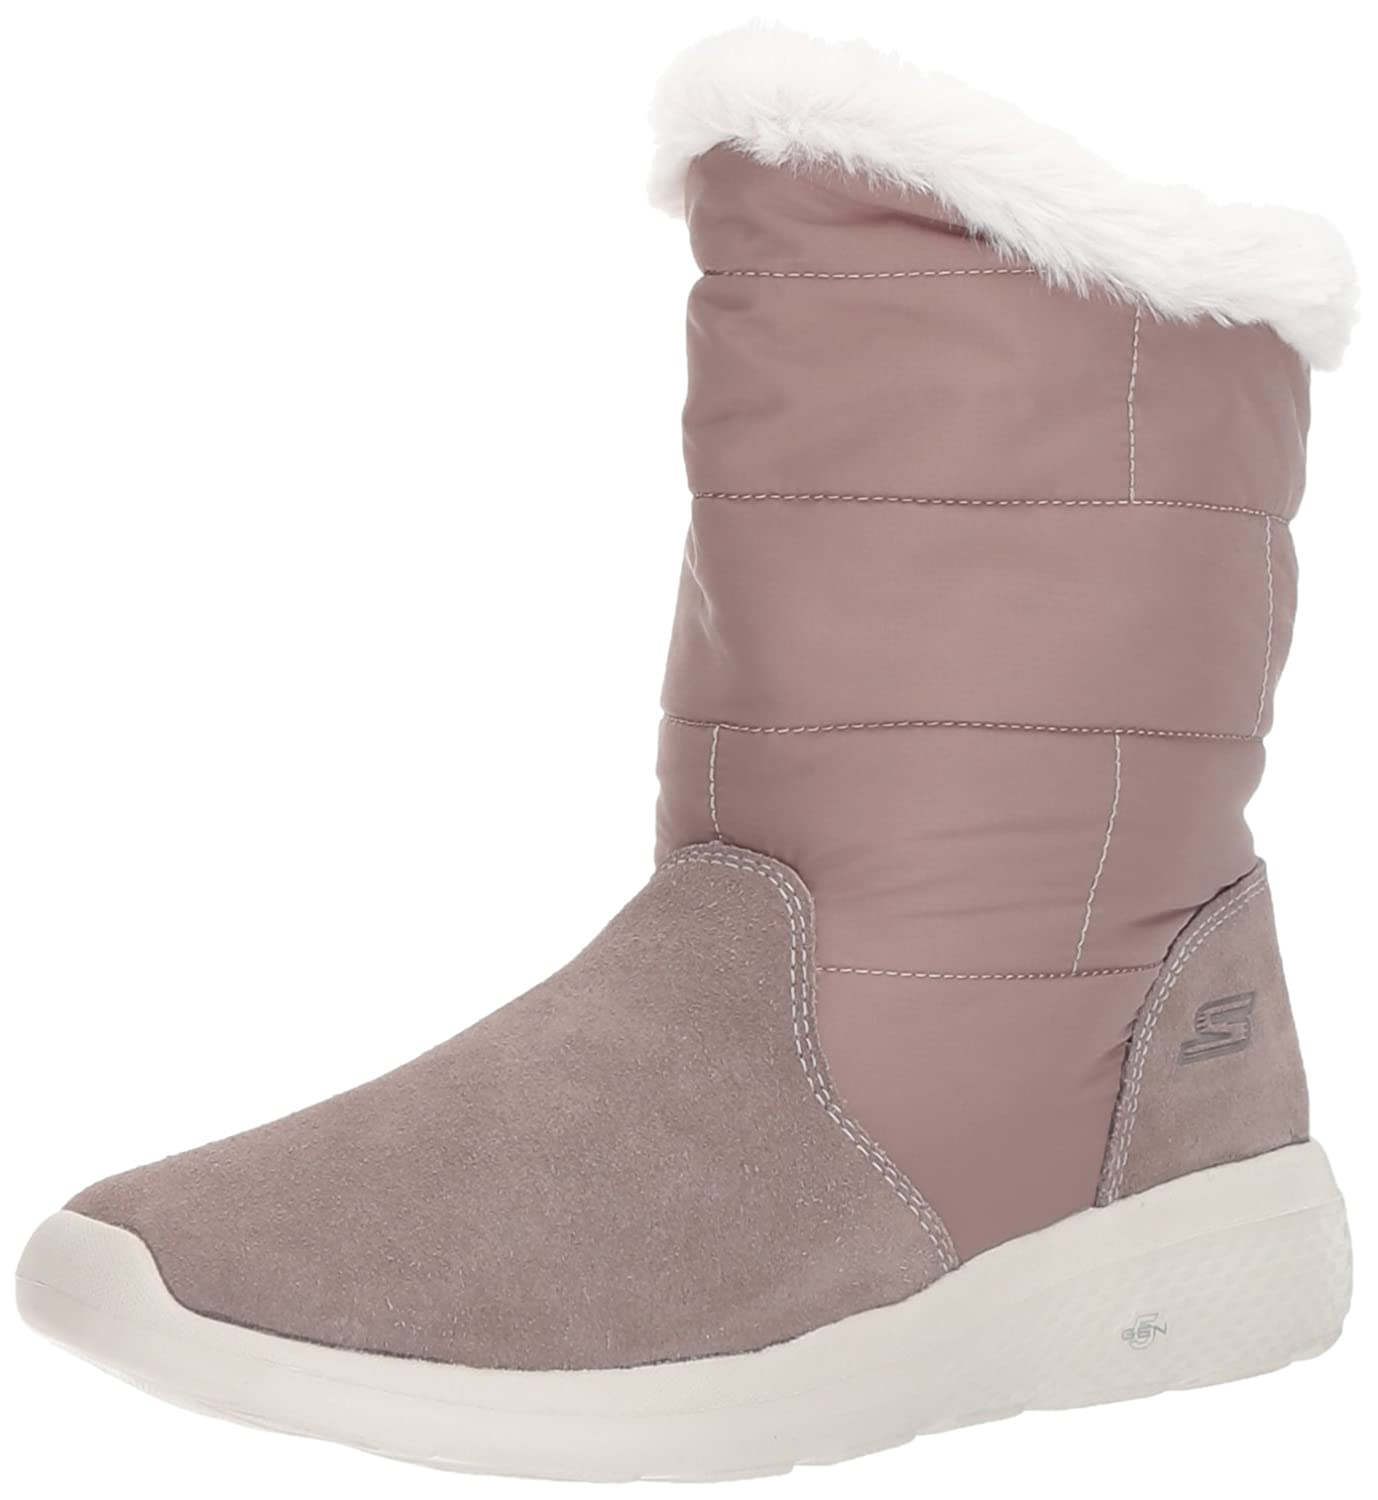 Skechers Damen on-The-Go City 2 Stiefel, Grau  36 EU|Beige (Taupe)